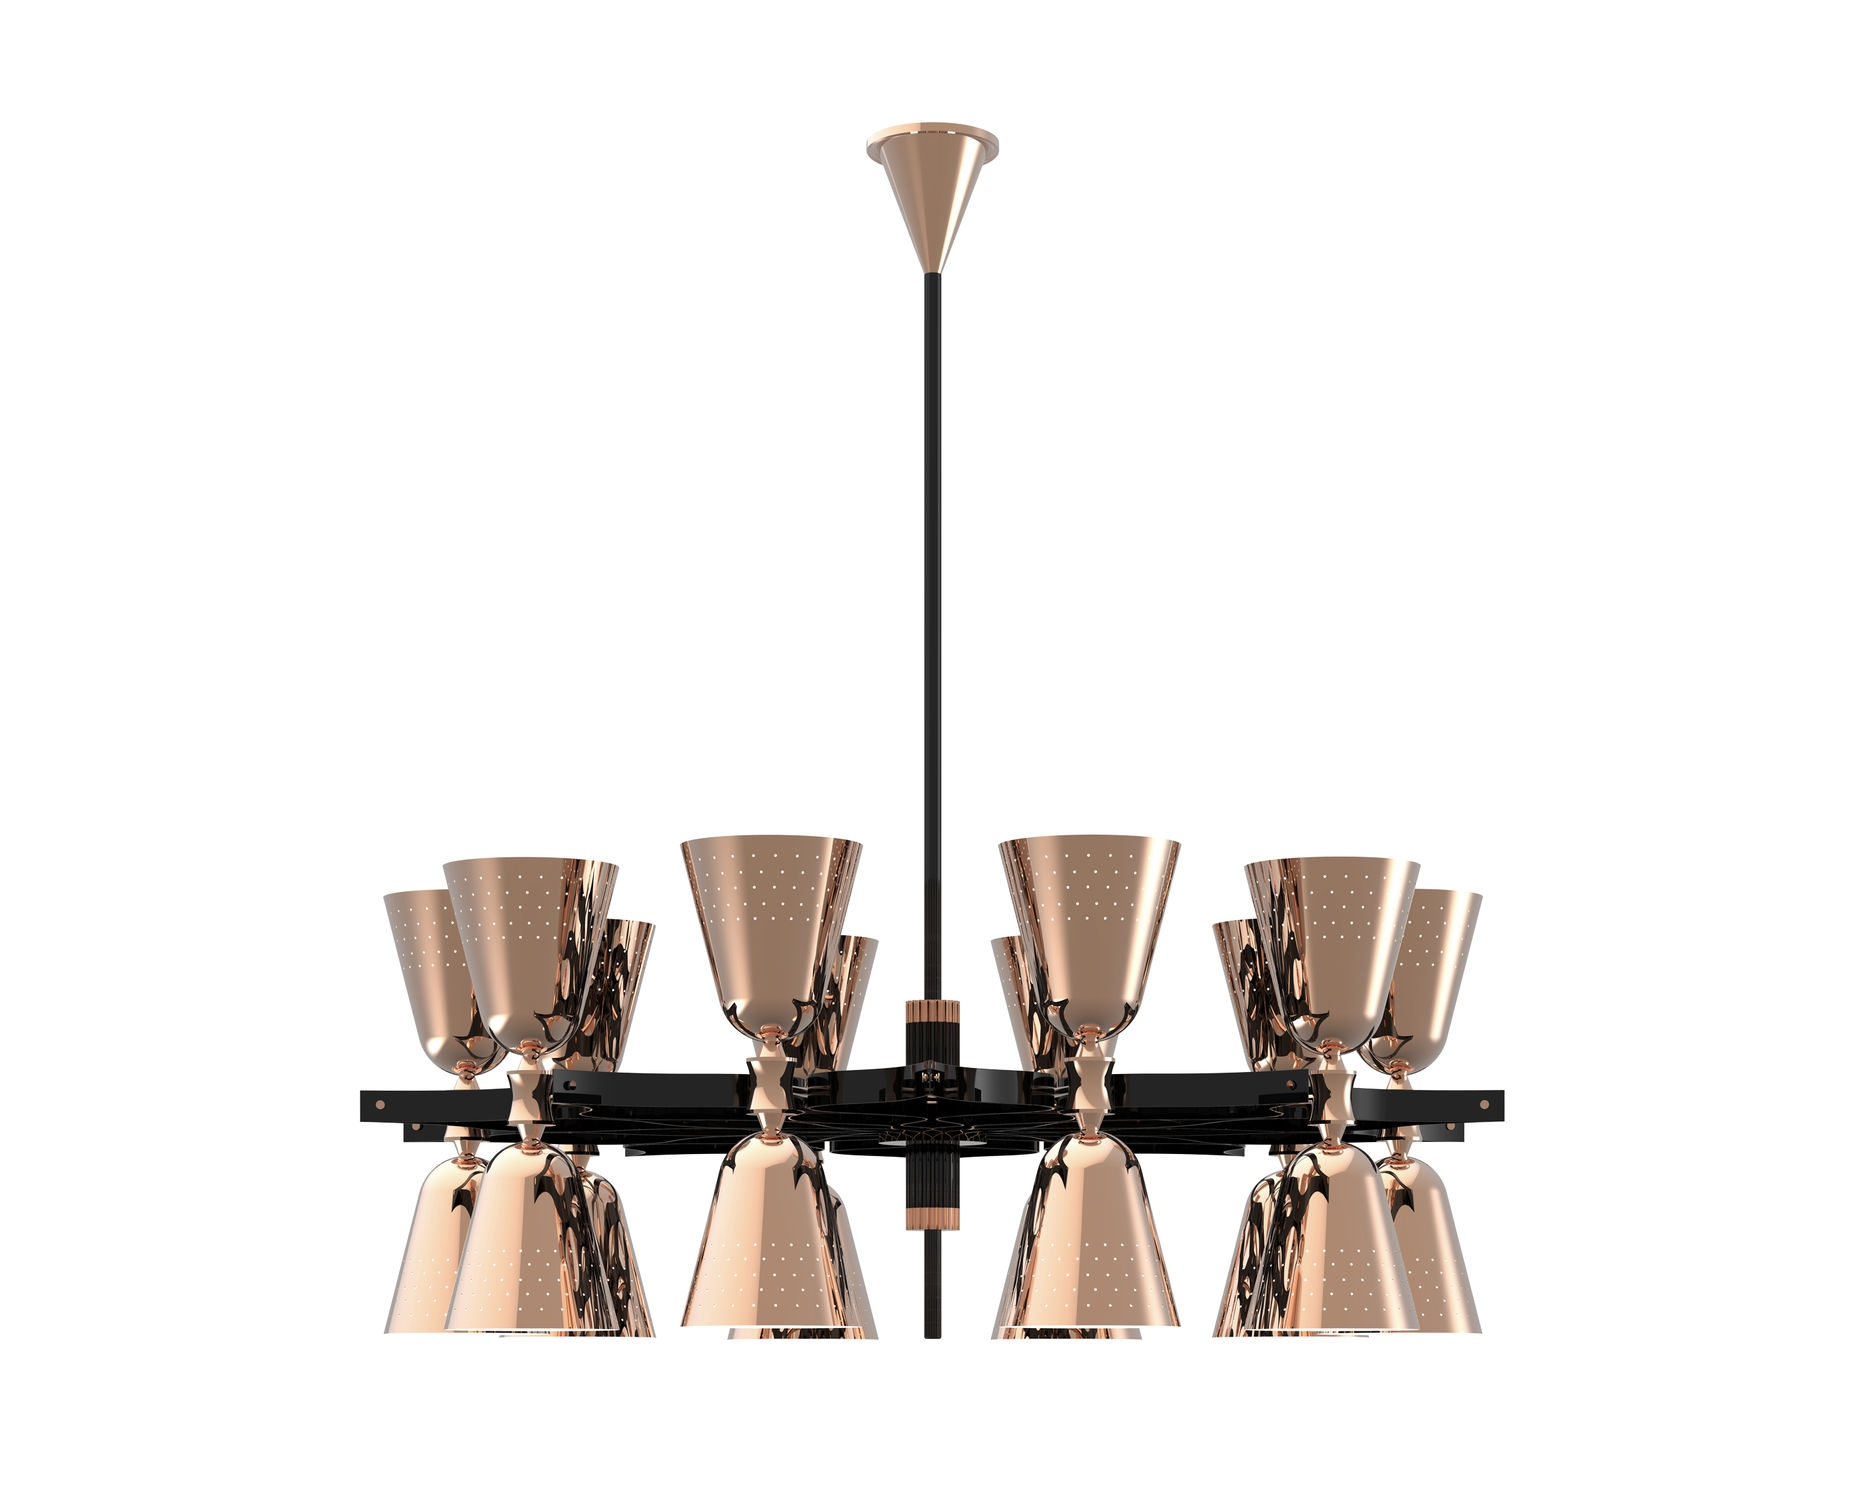 Contemporary Chandelier Brass Incandescent Charles 20 Inside Black Contemporary Chandelier (View 11 of 15)